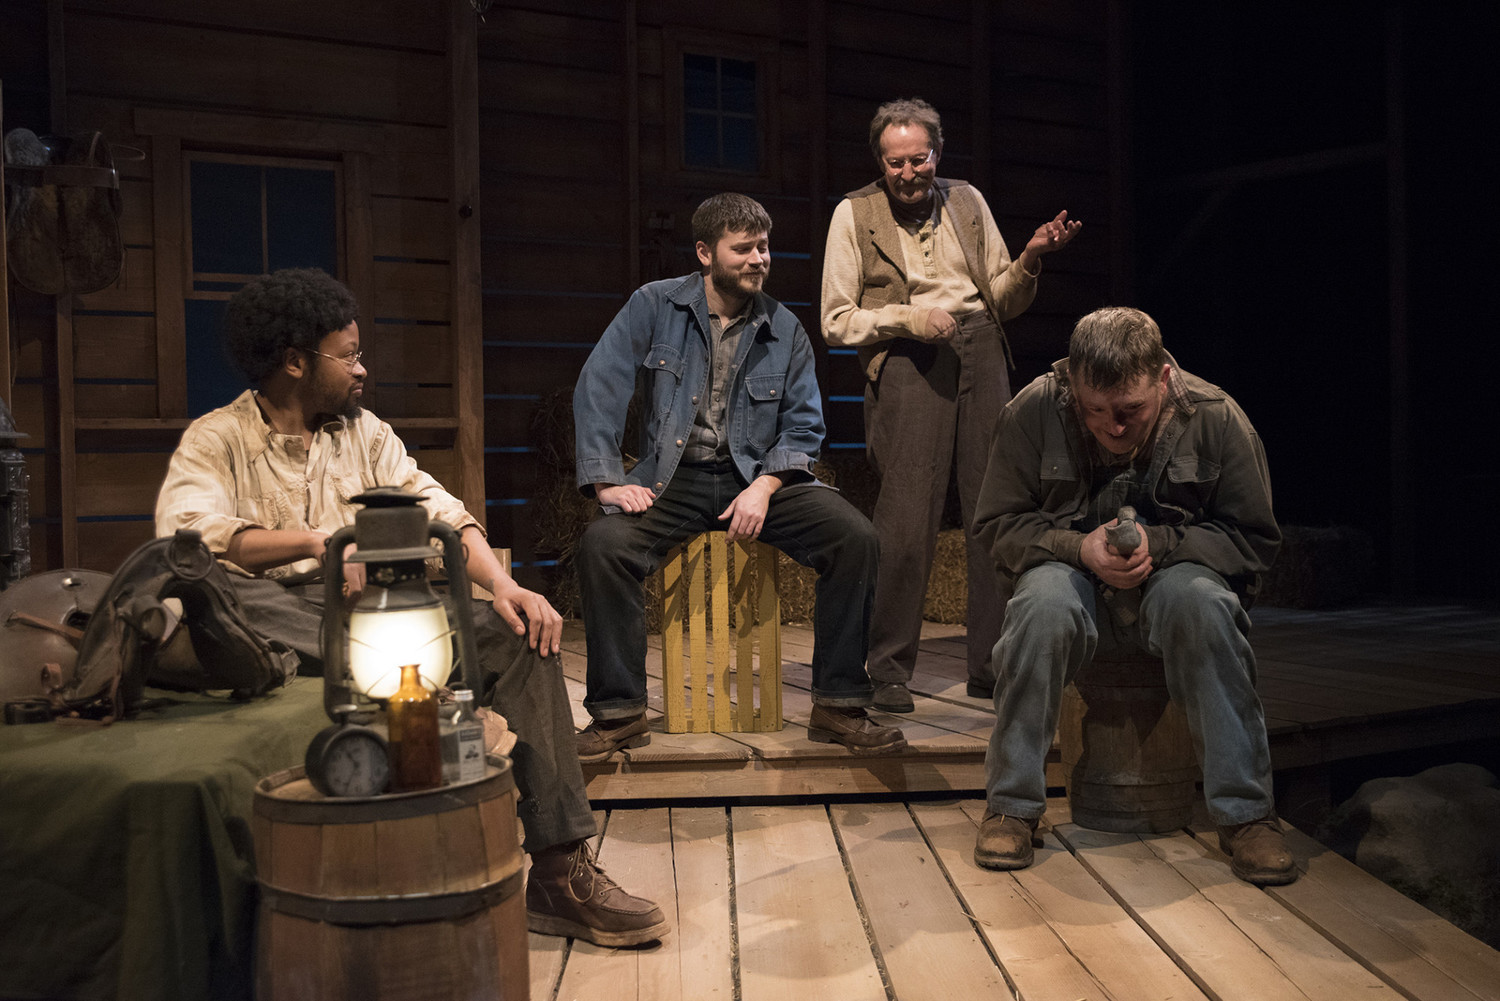 BWW Review: OF MICE AND MEN at Omaha Community Playhouse is Heart-Ripping Brilliance